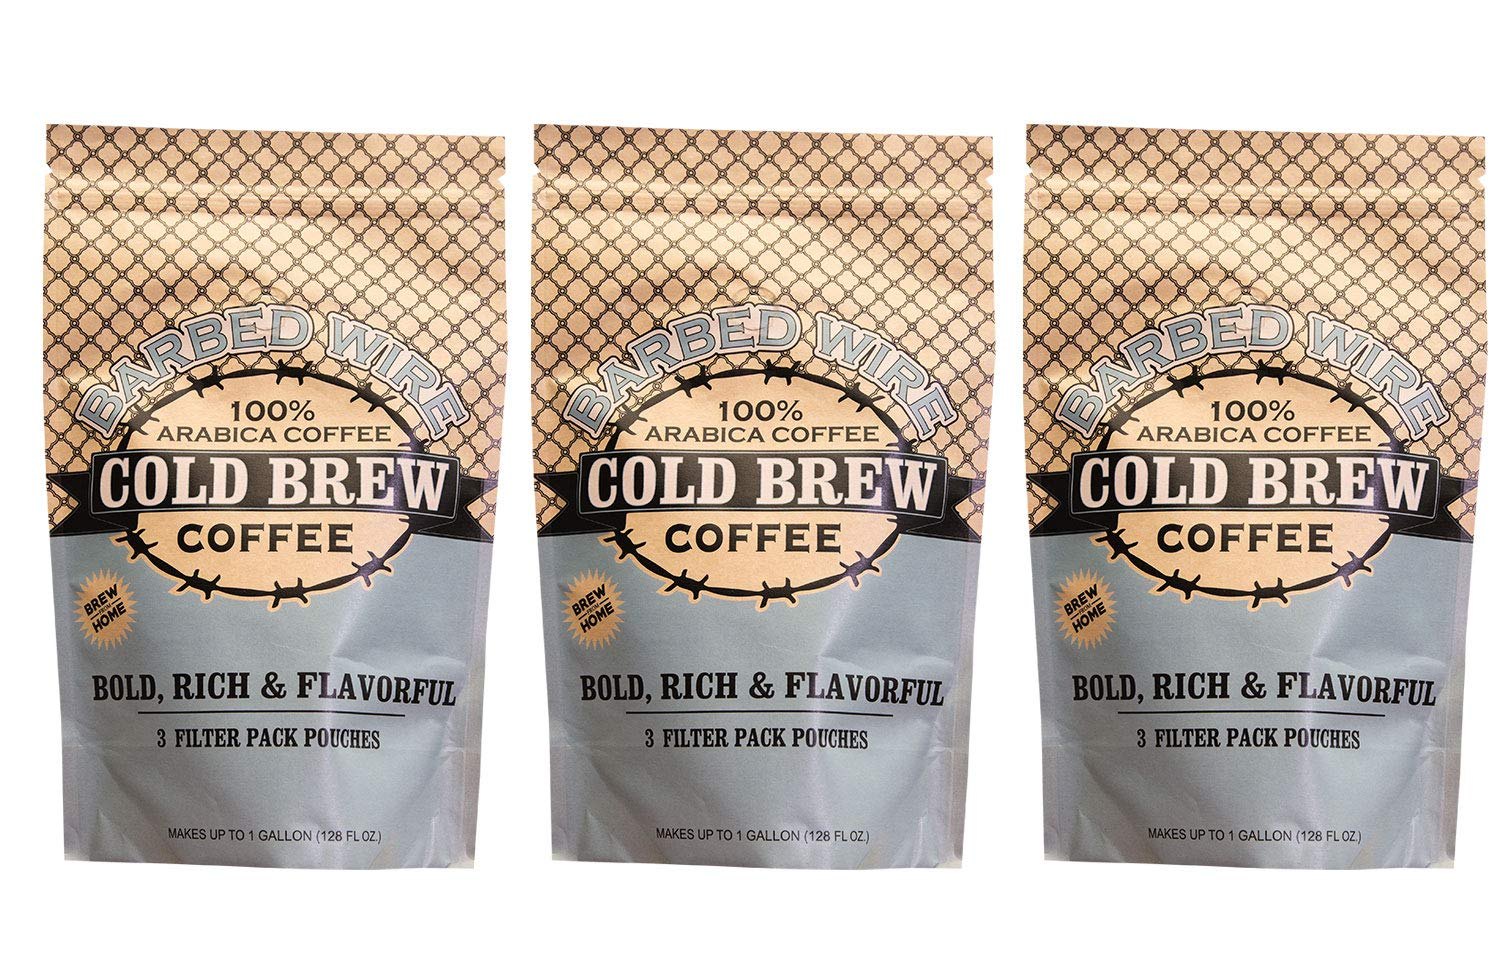 Barbed Wire Cold Brew, Empire Coffee Roasters, 128 Fl. Oz - 3 Pack, 100% Arabica Single Origin Colombian Coffee, Kosher